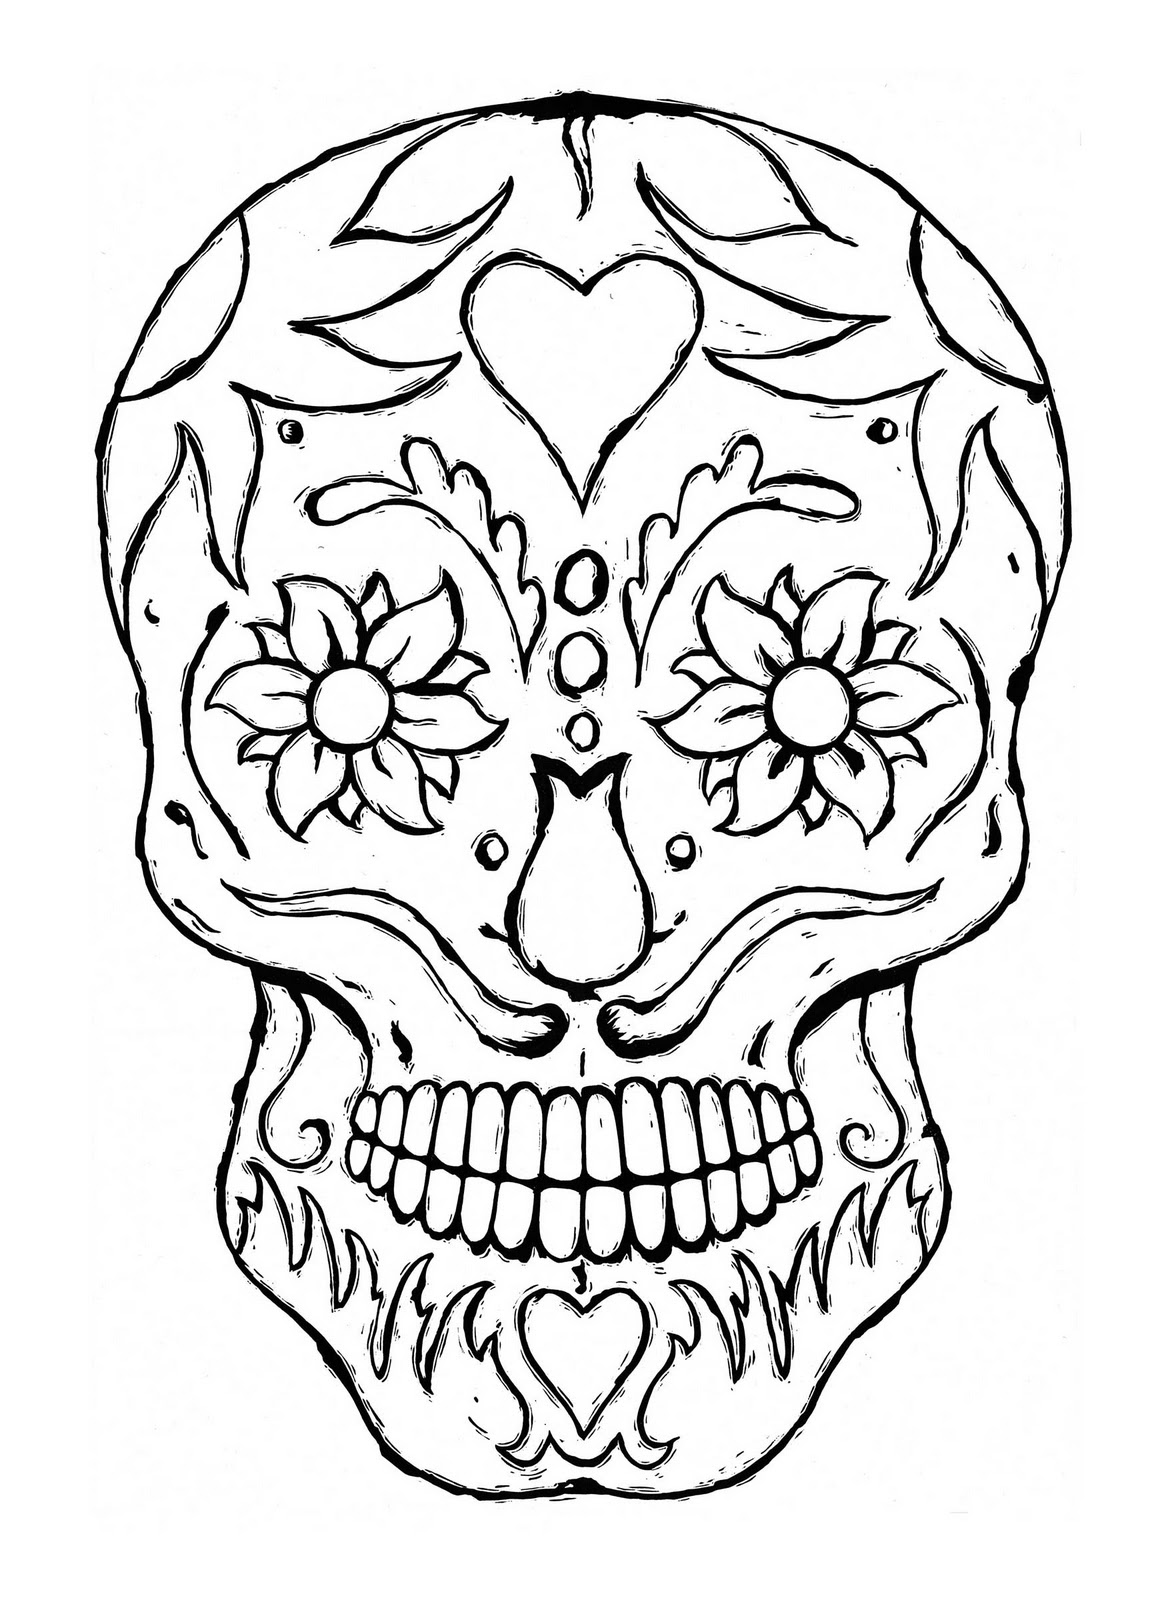 skull coloring pages printable coloring pages skull free printable coloring pages coloring printable skull pages